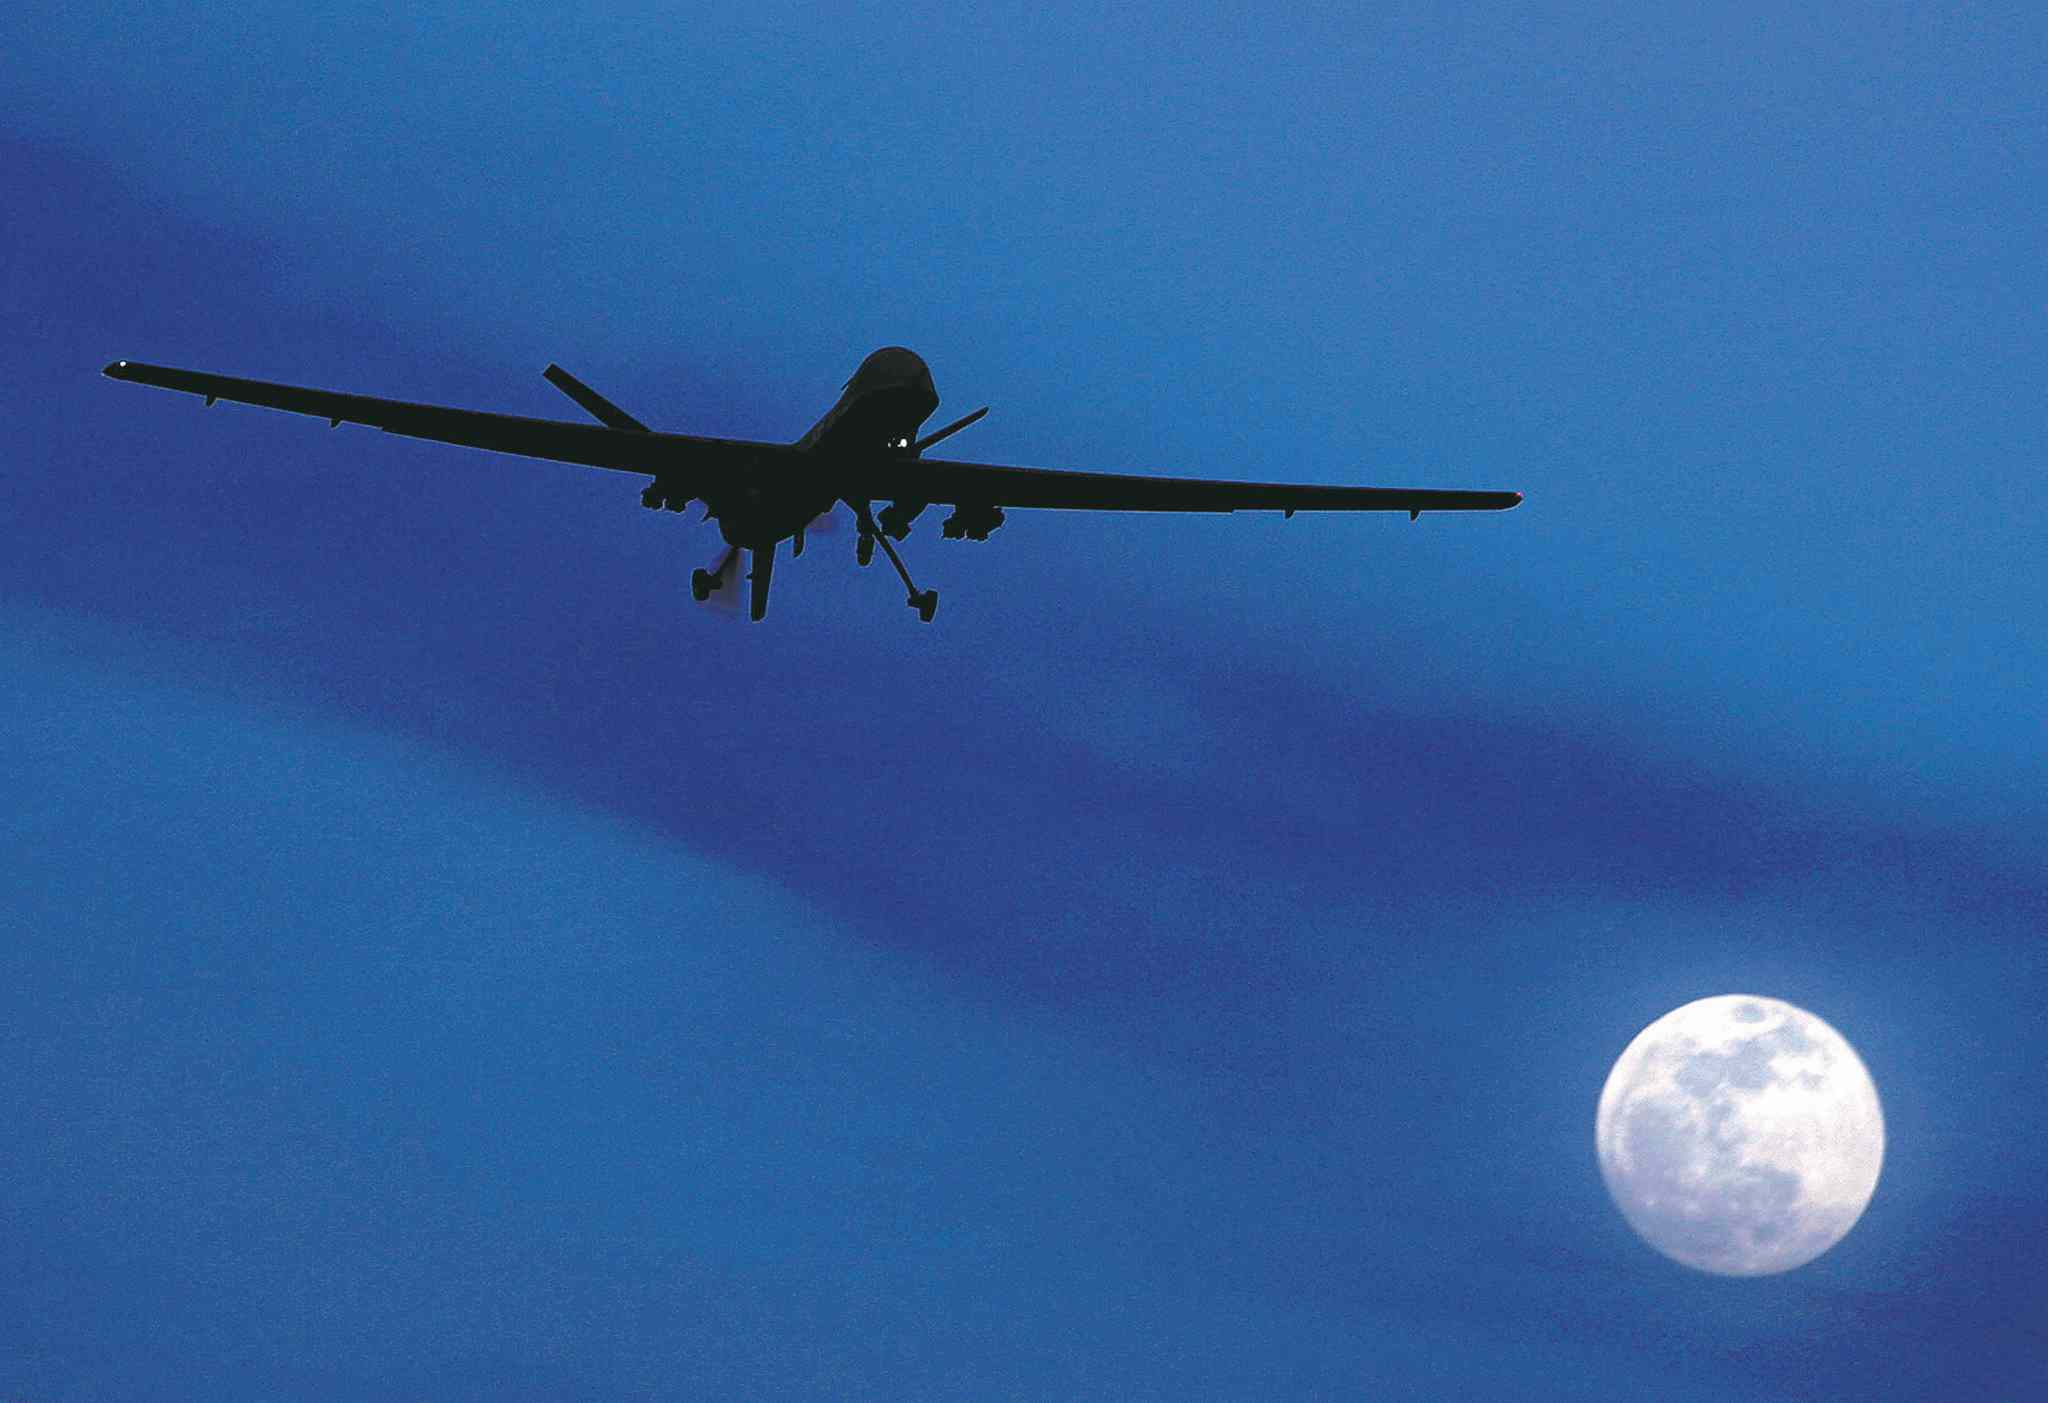 In reducing casualties on both sides of battle, William M. Arkin argues drones distract politicians from the root causes of conflict.